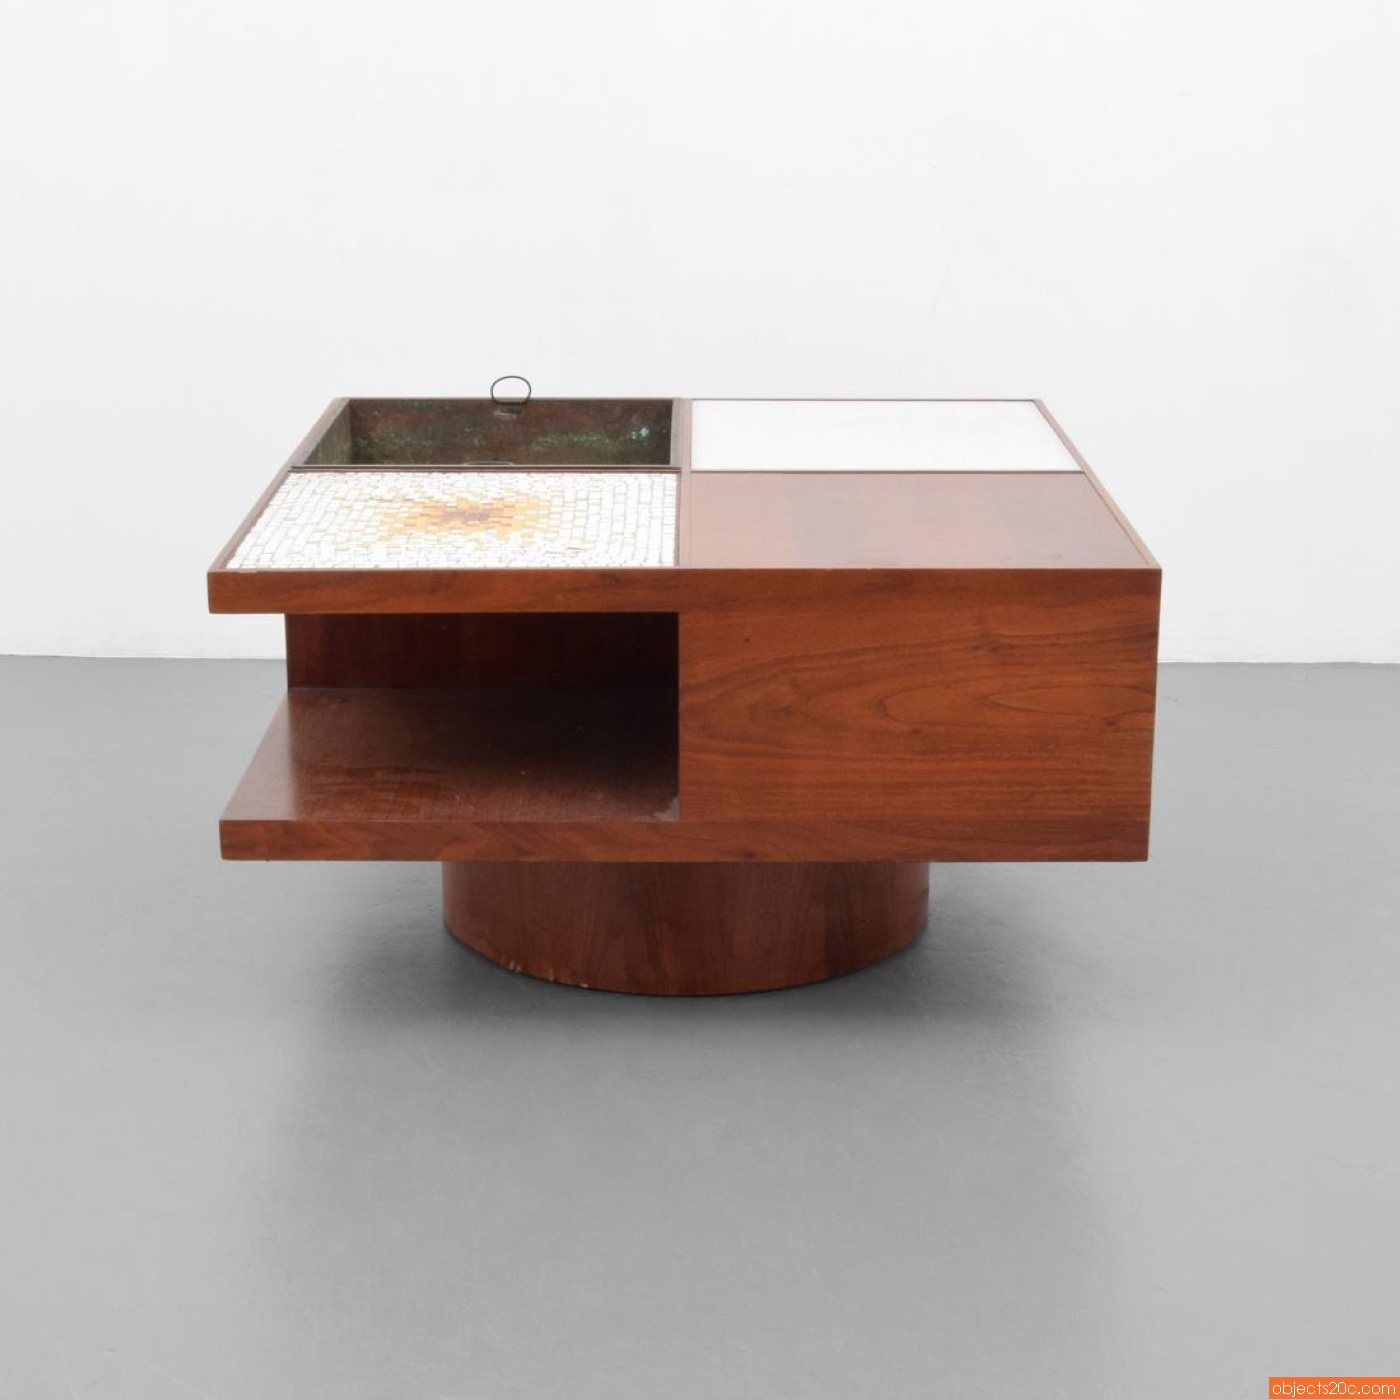 Vladimir Kagan Lighted Coffee Table Model 440 Objects20c Gallery